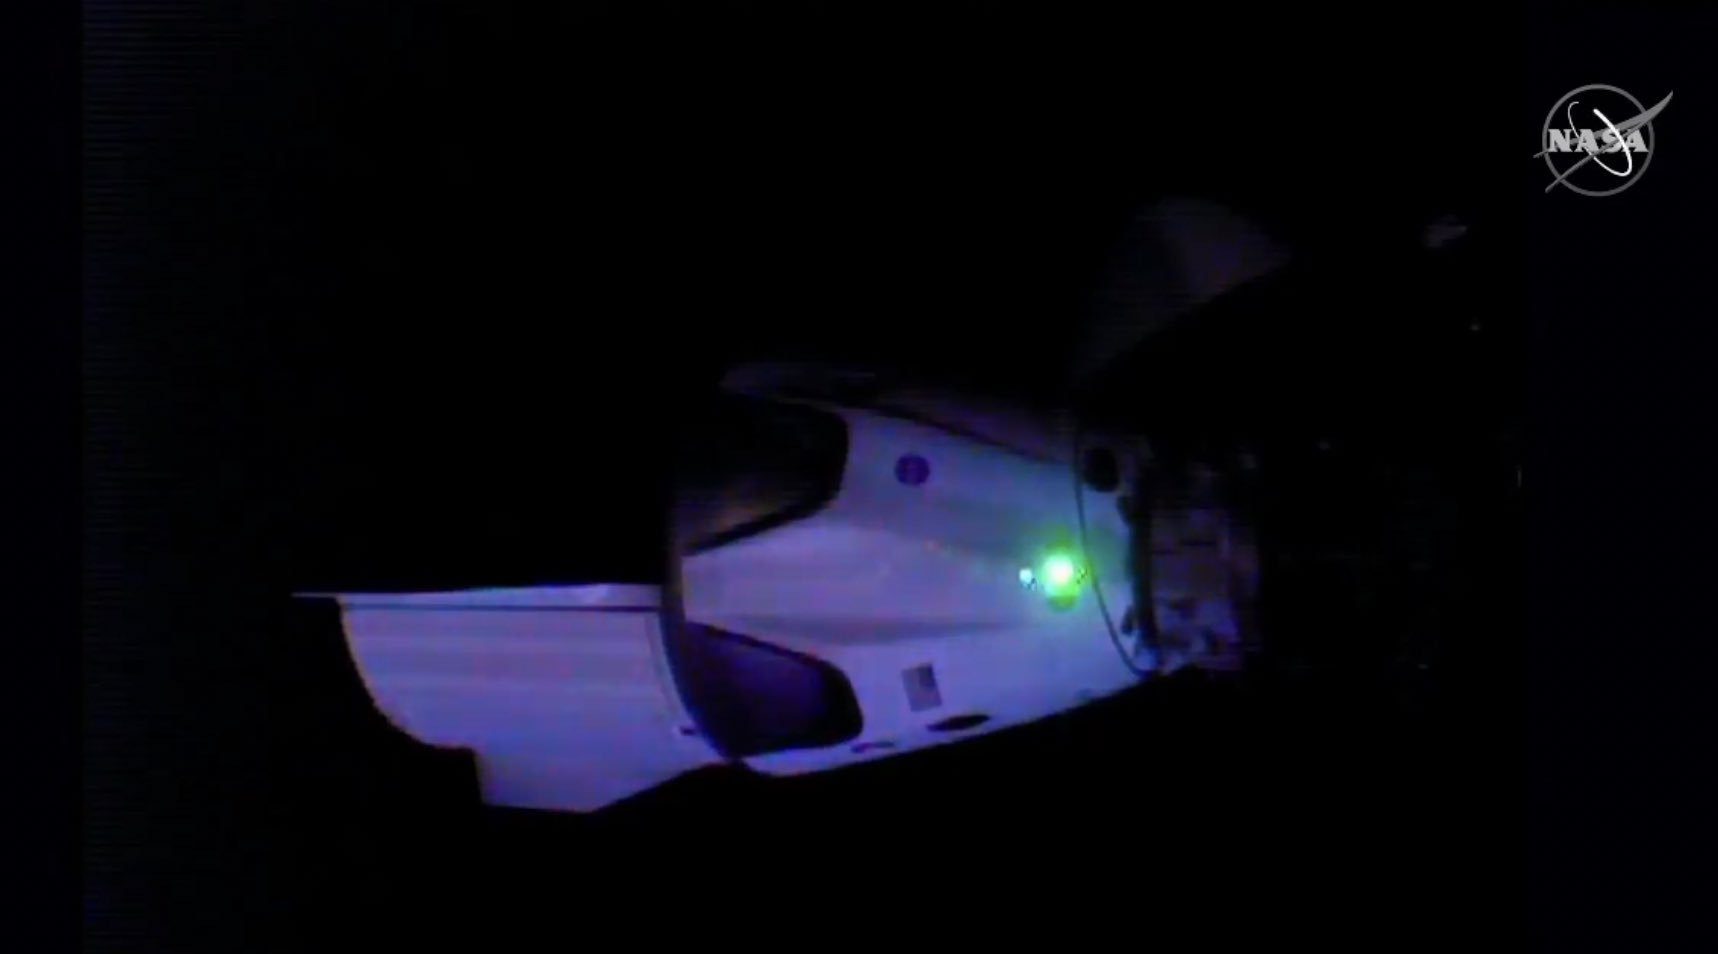 Screenshot from the NASA feed showing the SpaceX Crew Dragon docking with the International Space Station.